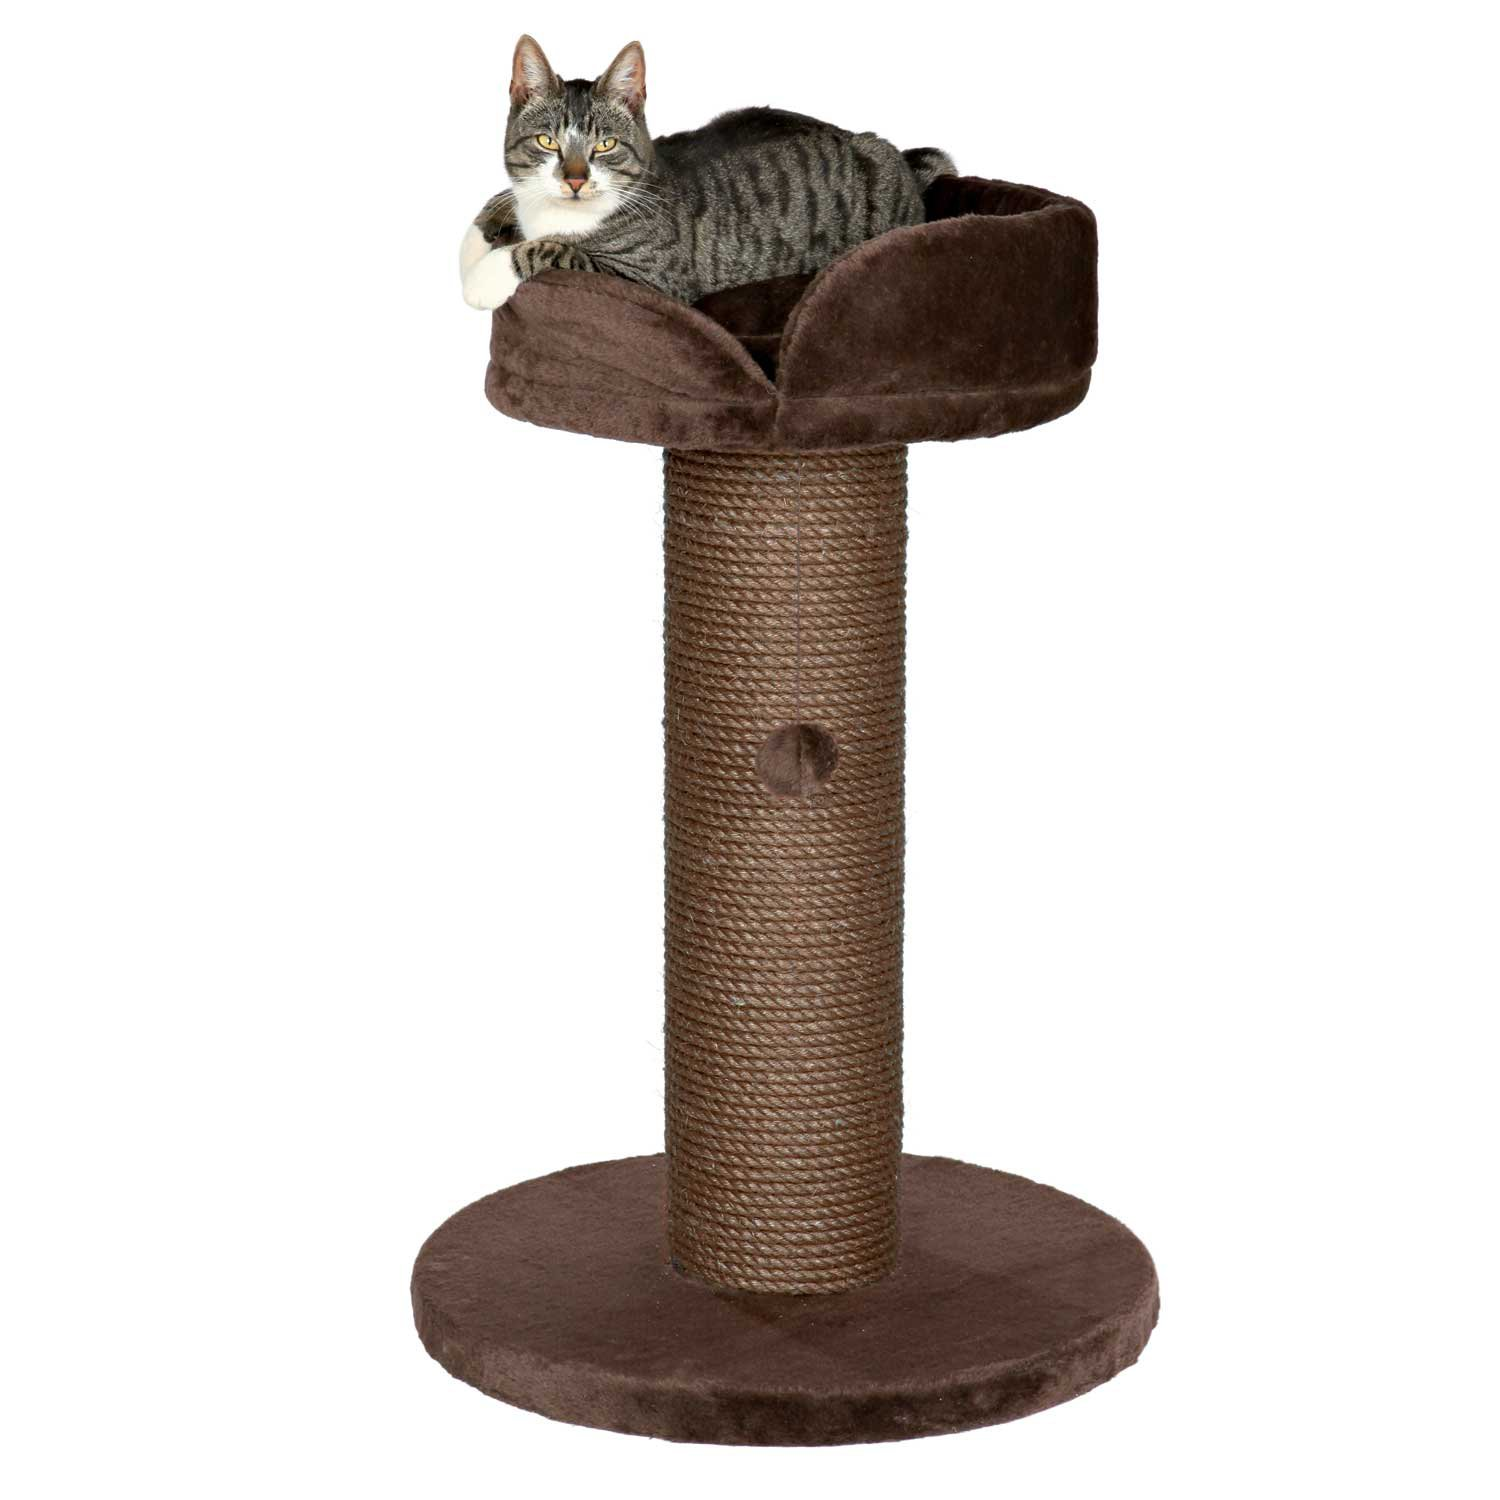 Trixie Pepino Scratching Post in Chocolate Brown